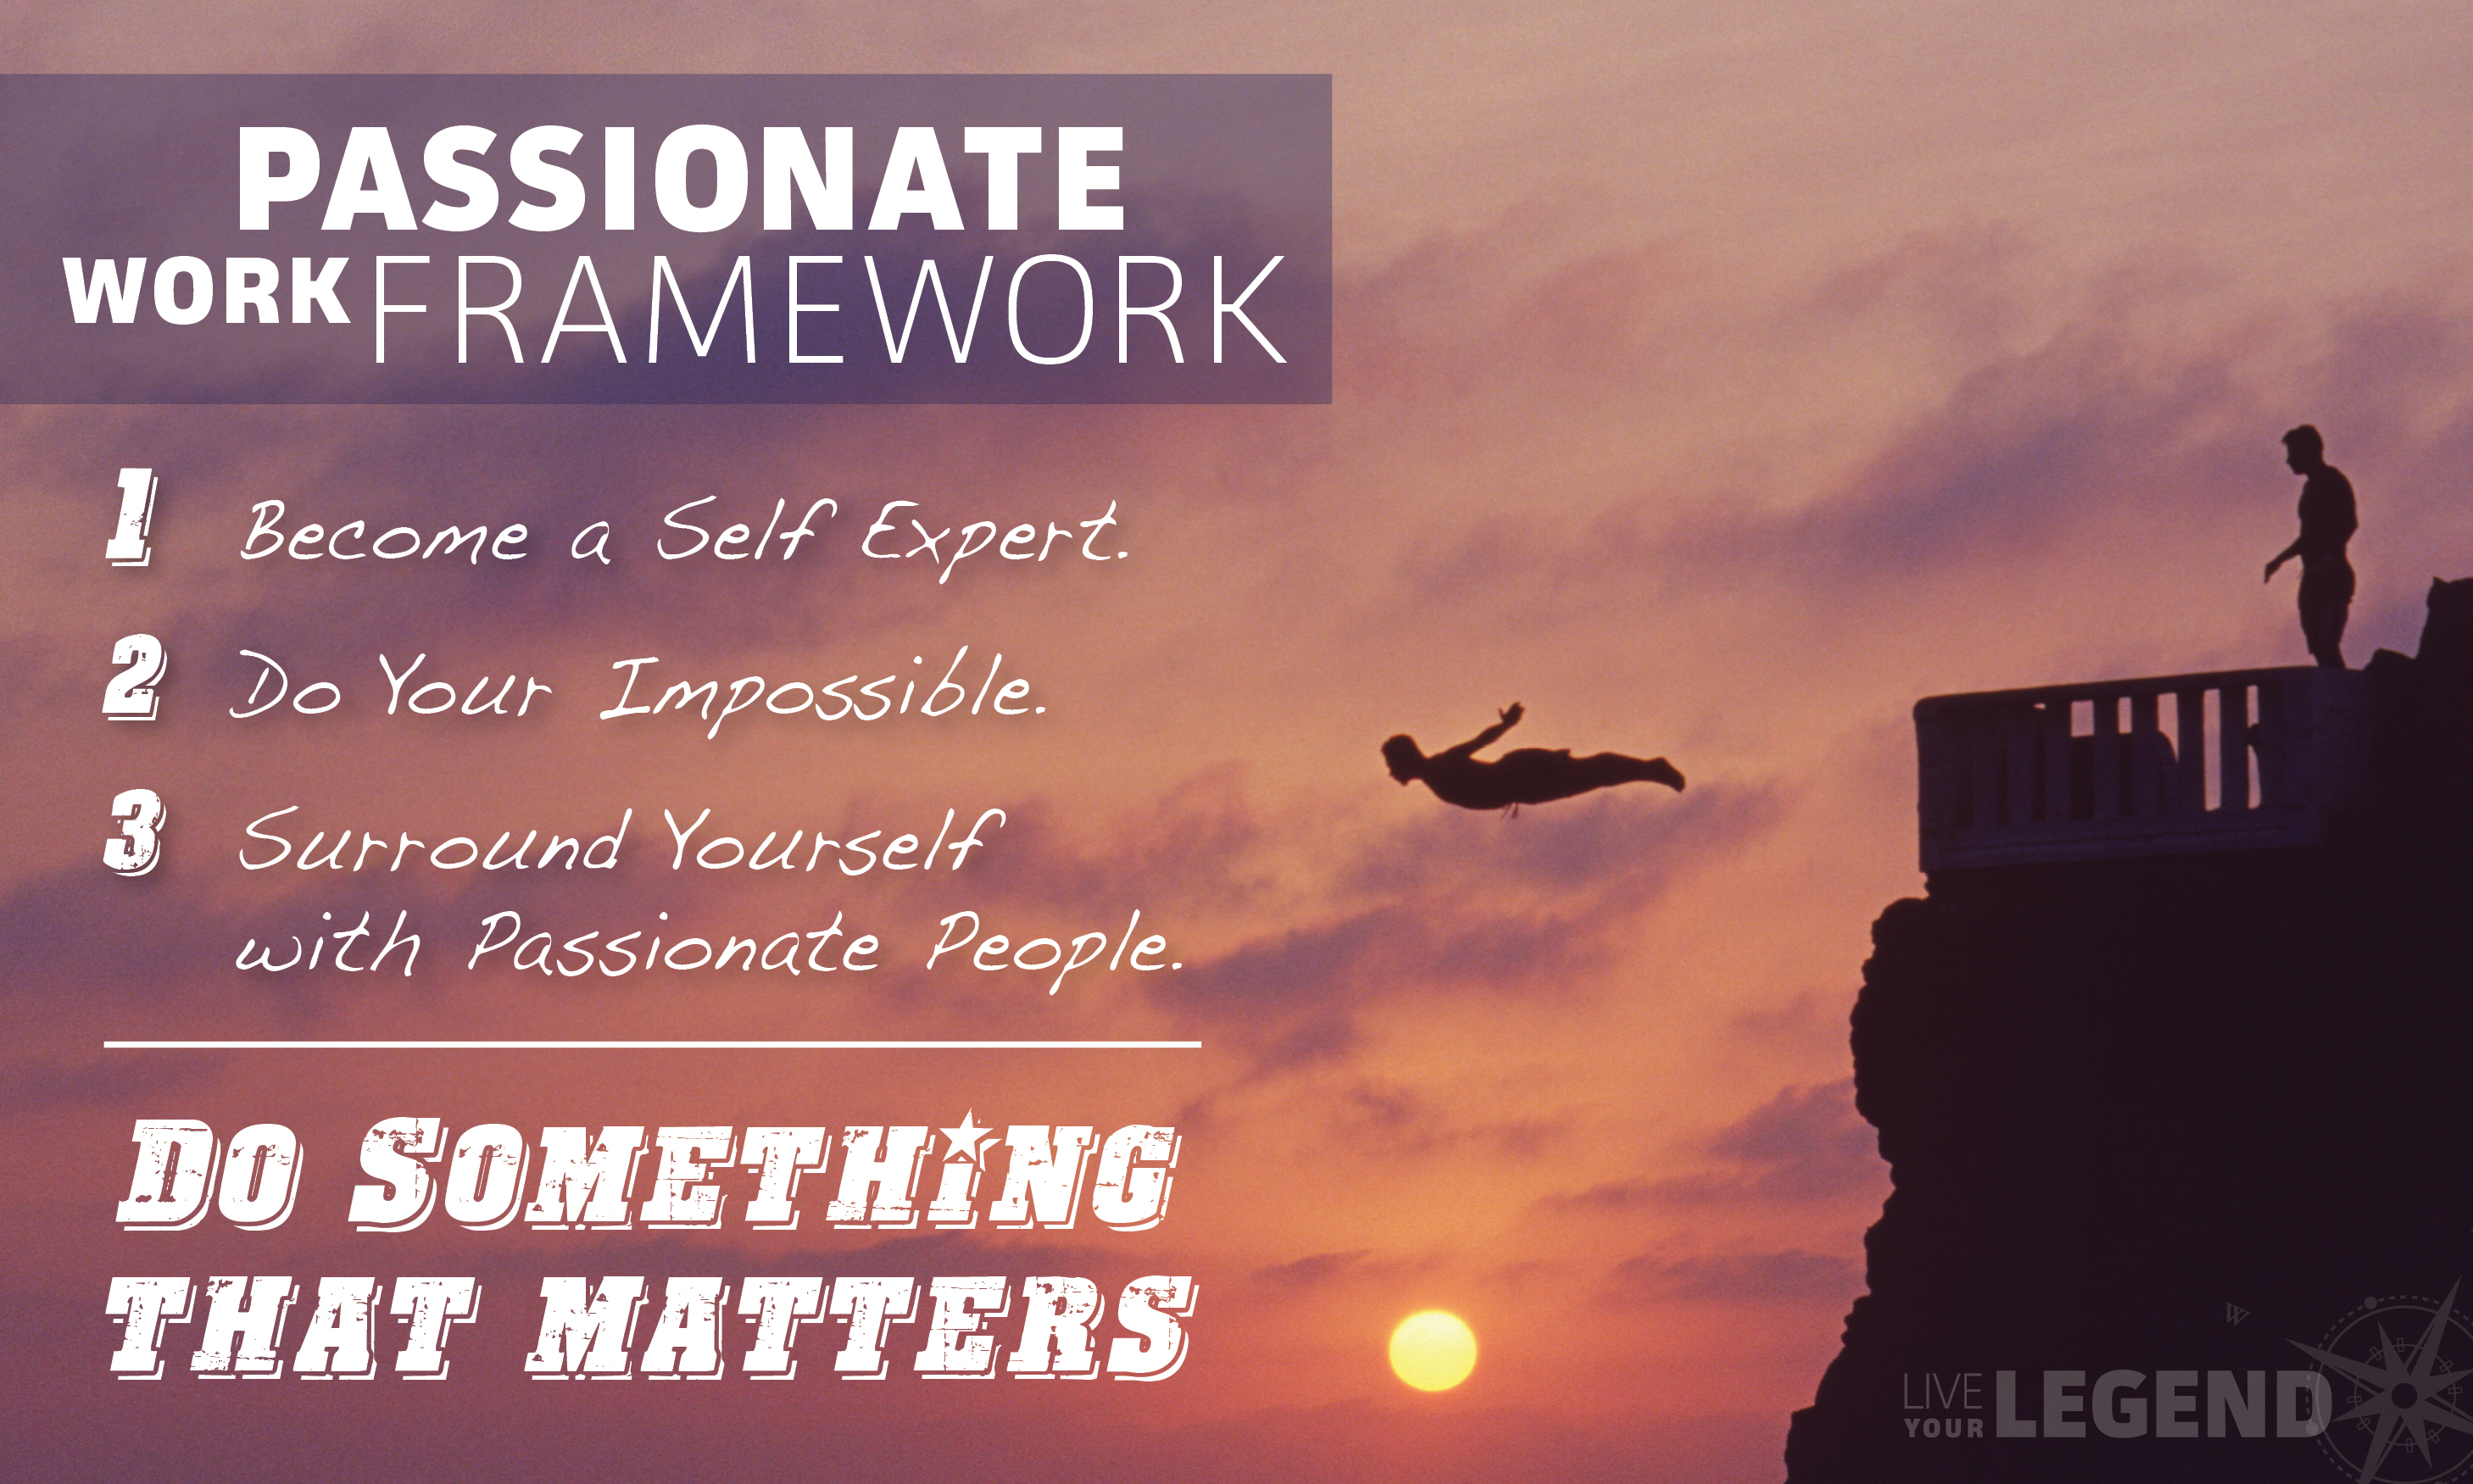 The Live Your Legend Passionate Work Framework